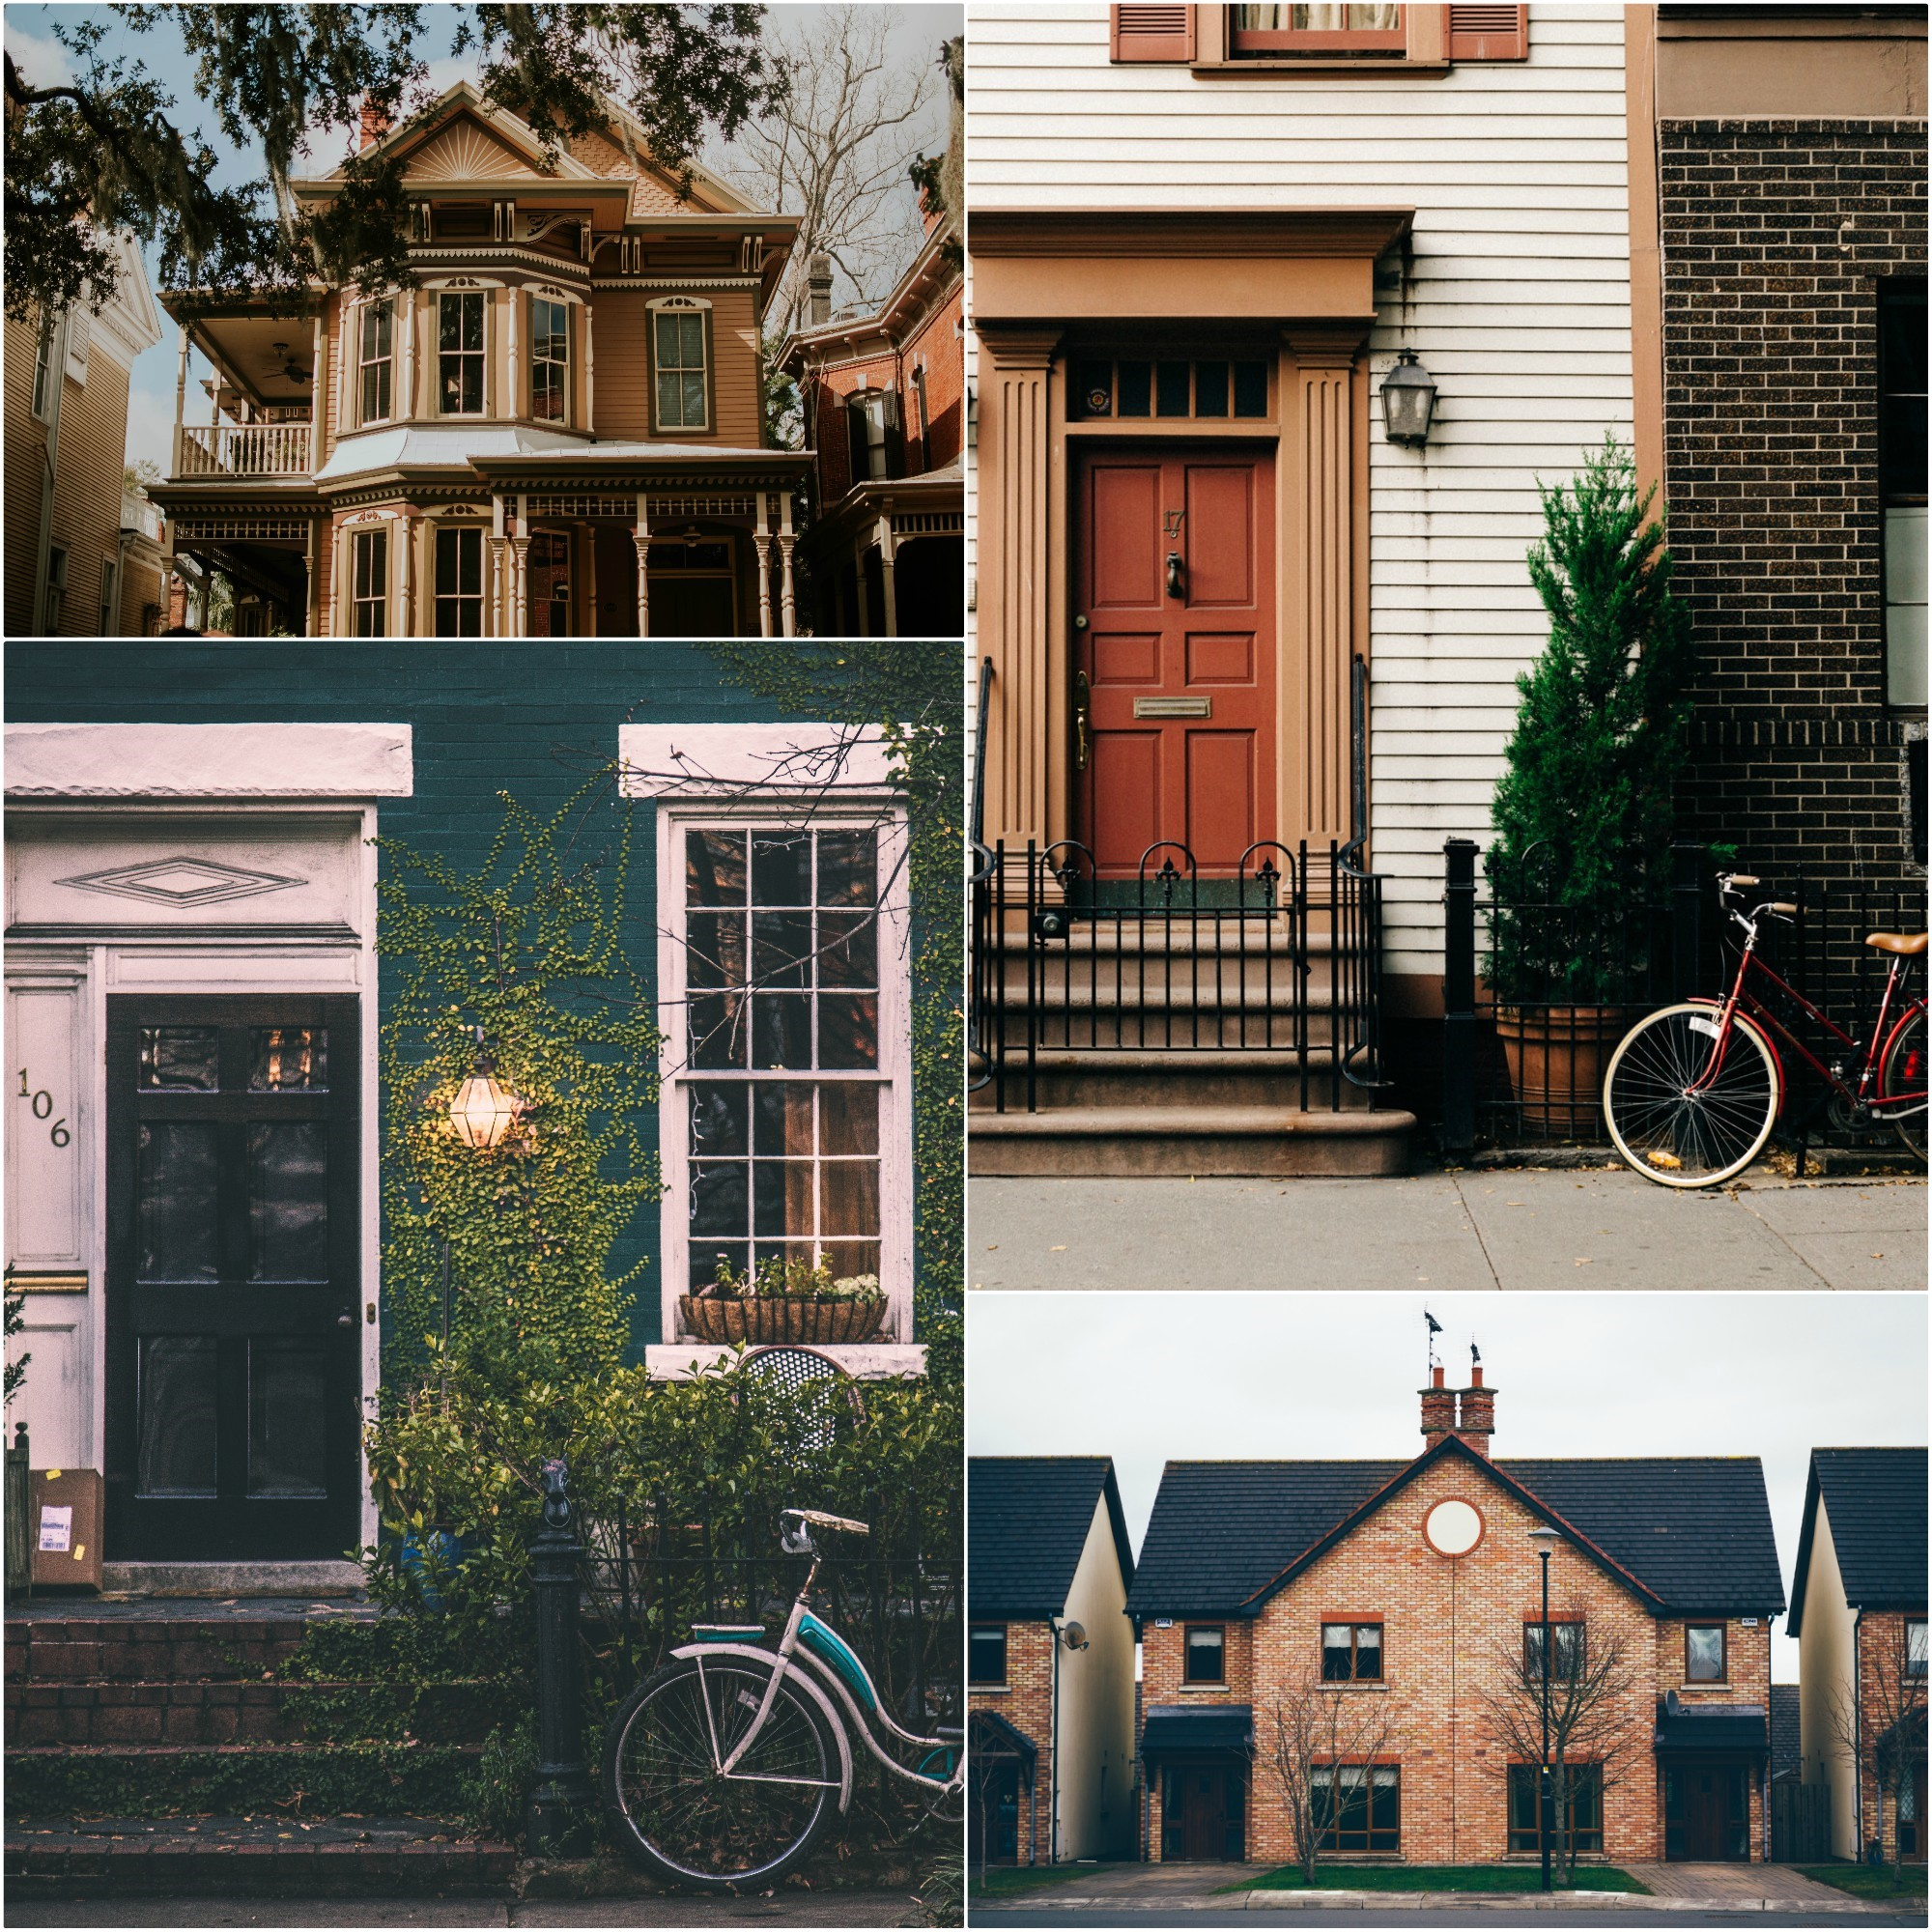 Selling a Home: What Does Your House Exterior Say to Buyers